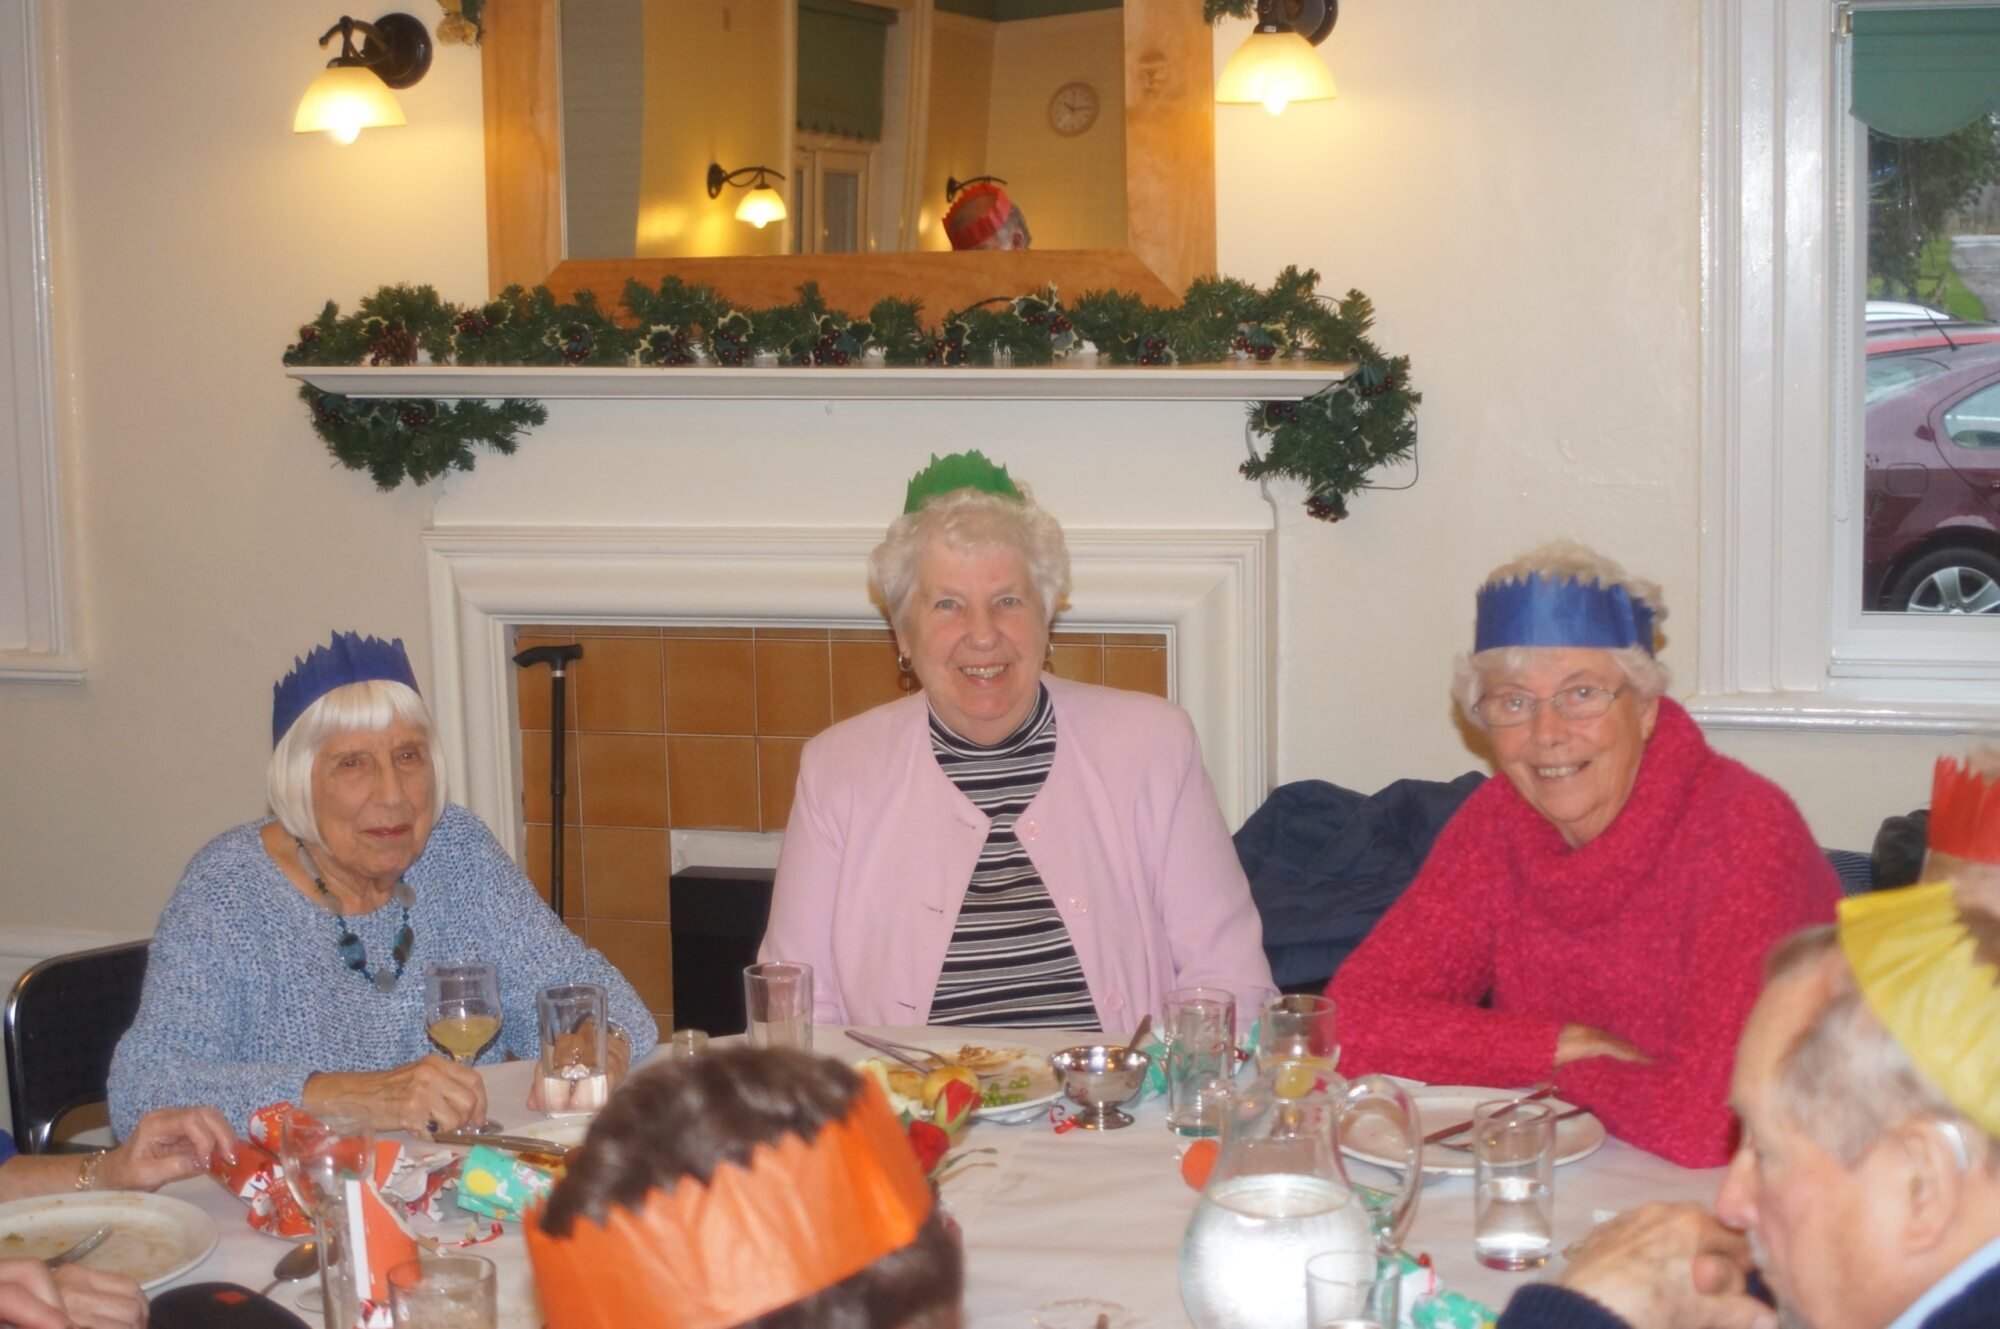 Women sat at table having Christmas lunch